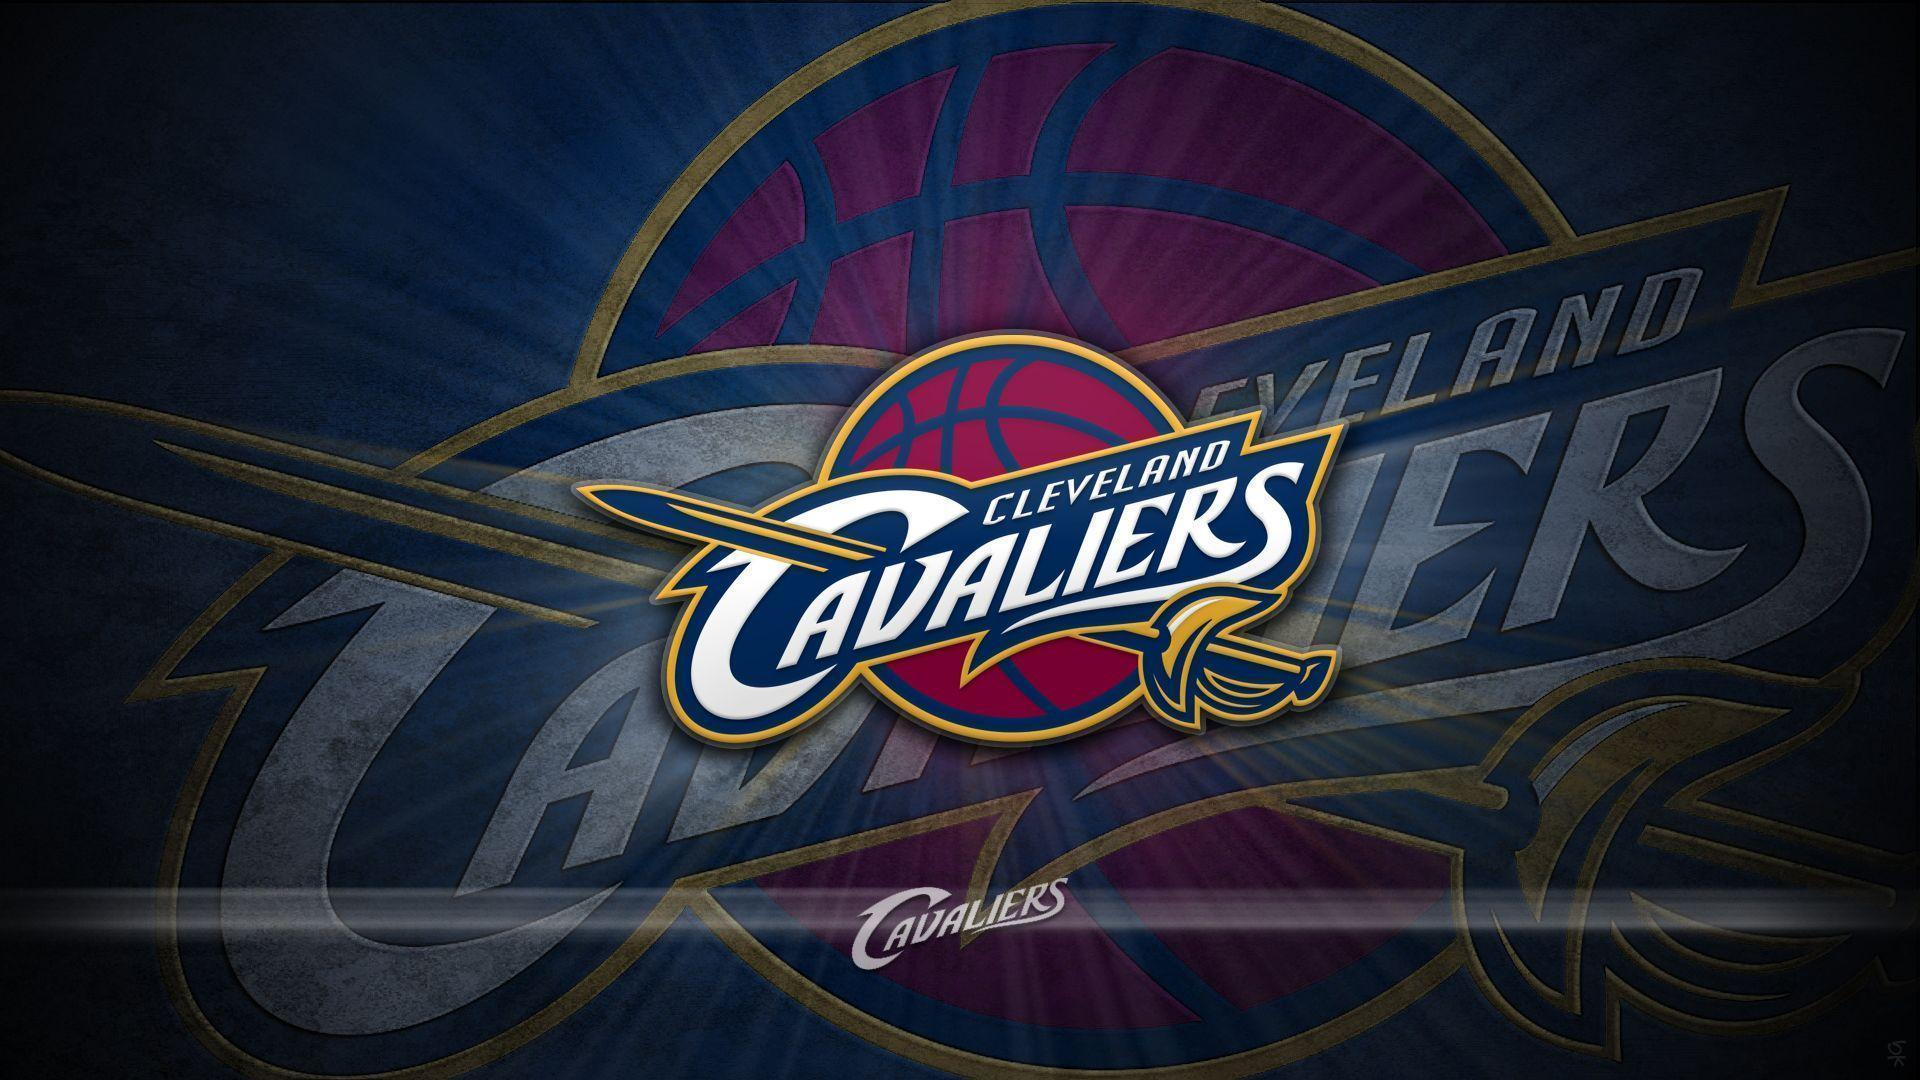 Cleveland cavs wallpapers wallpaper cave - Cleveland cavaliers wallpaper ...